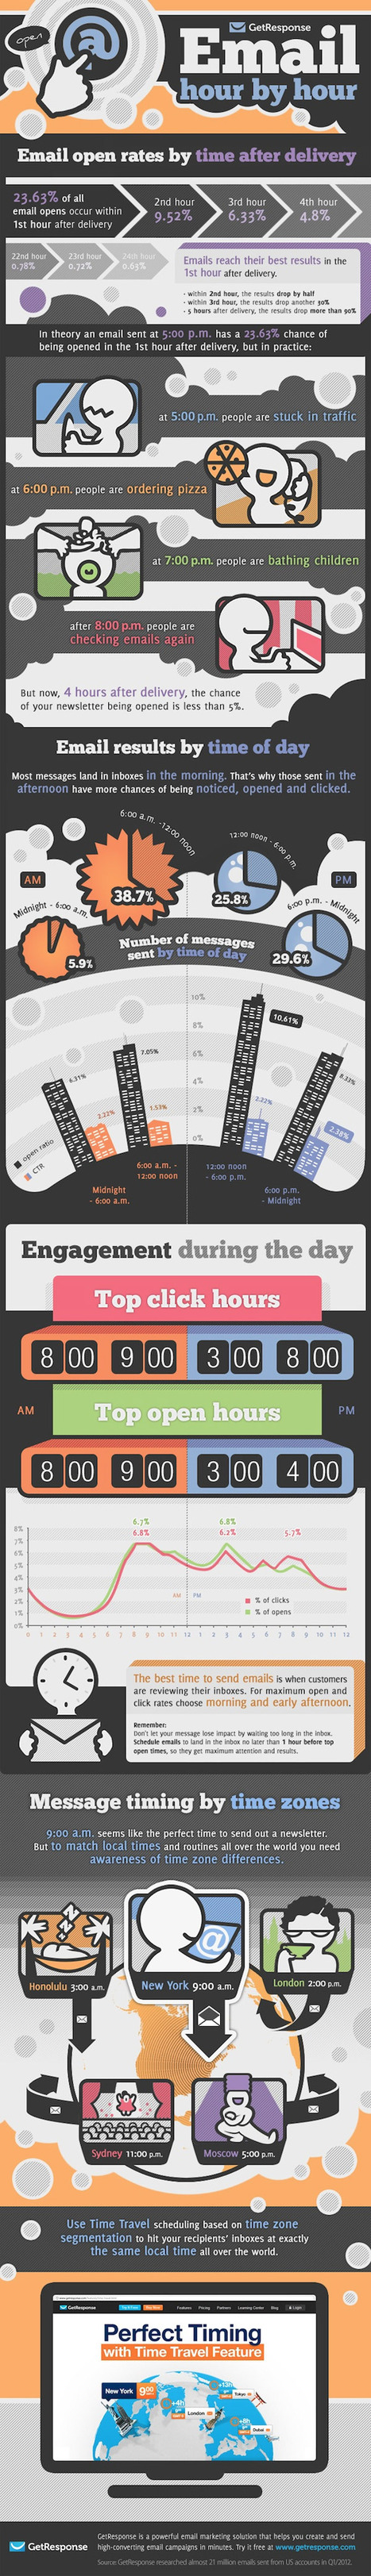 The Best Time Of The Day To Send Emails [INFOGRAPHIC] | Social Media Visuals & Infographics | Scoop.it